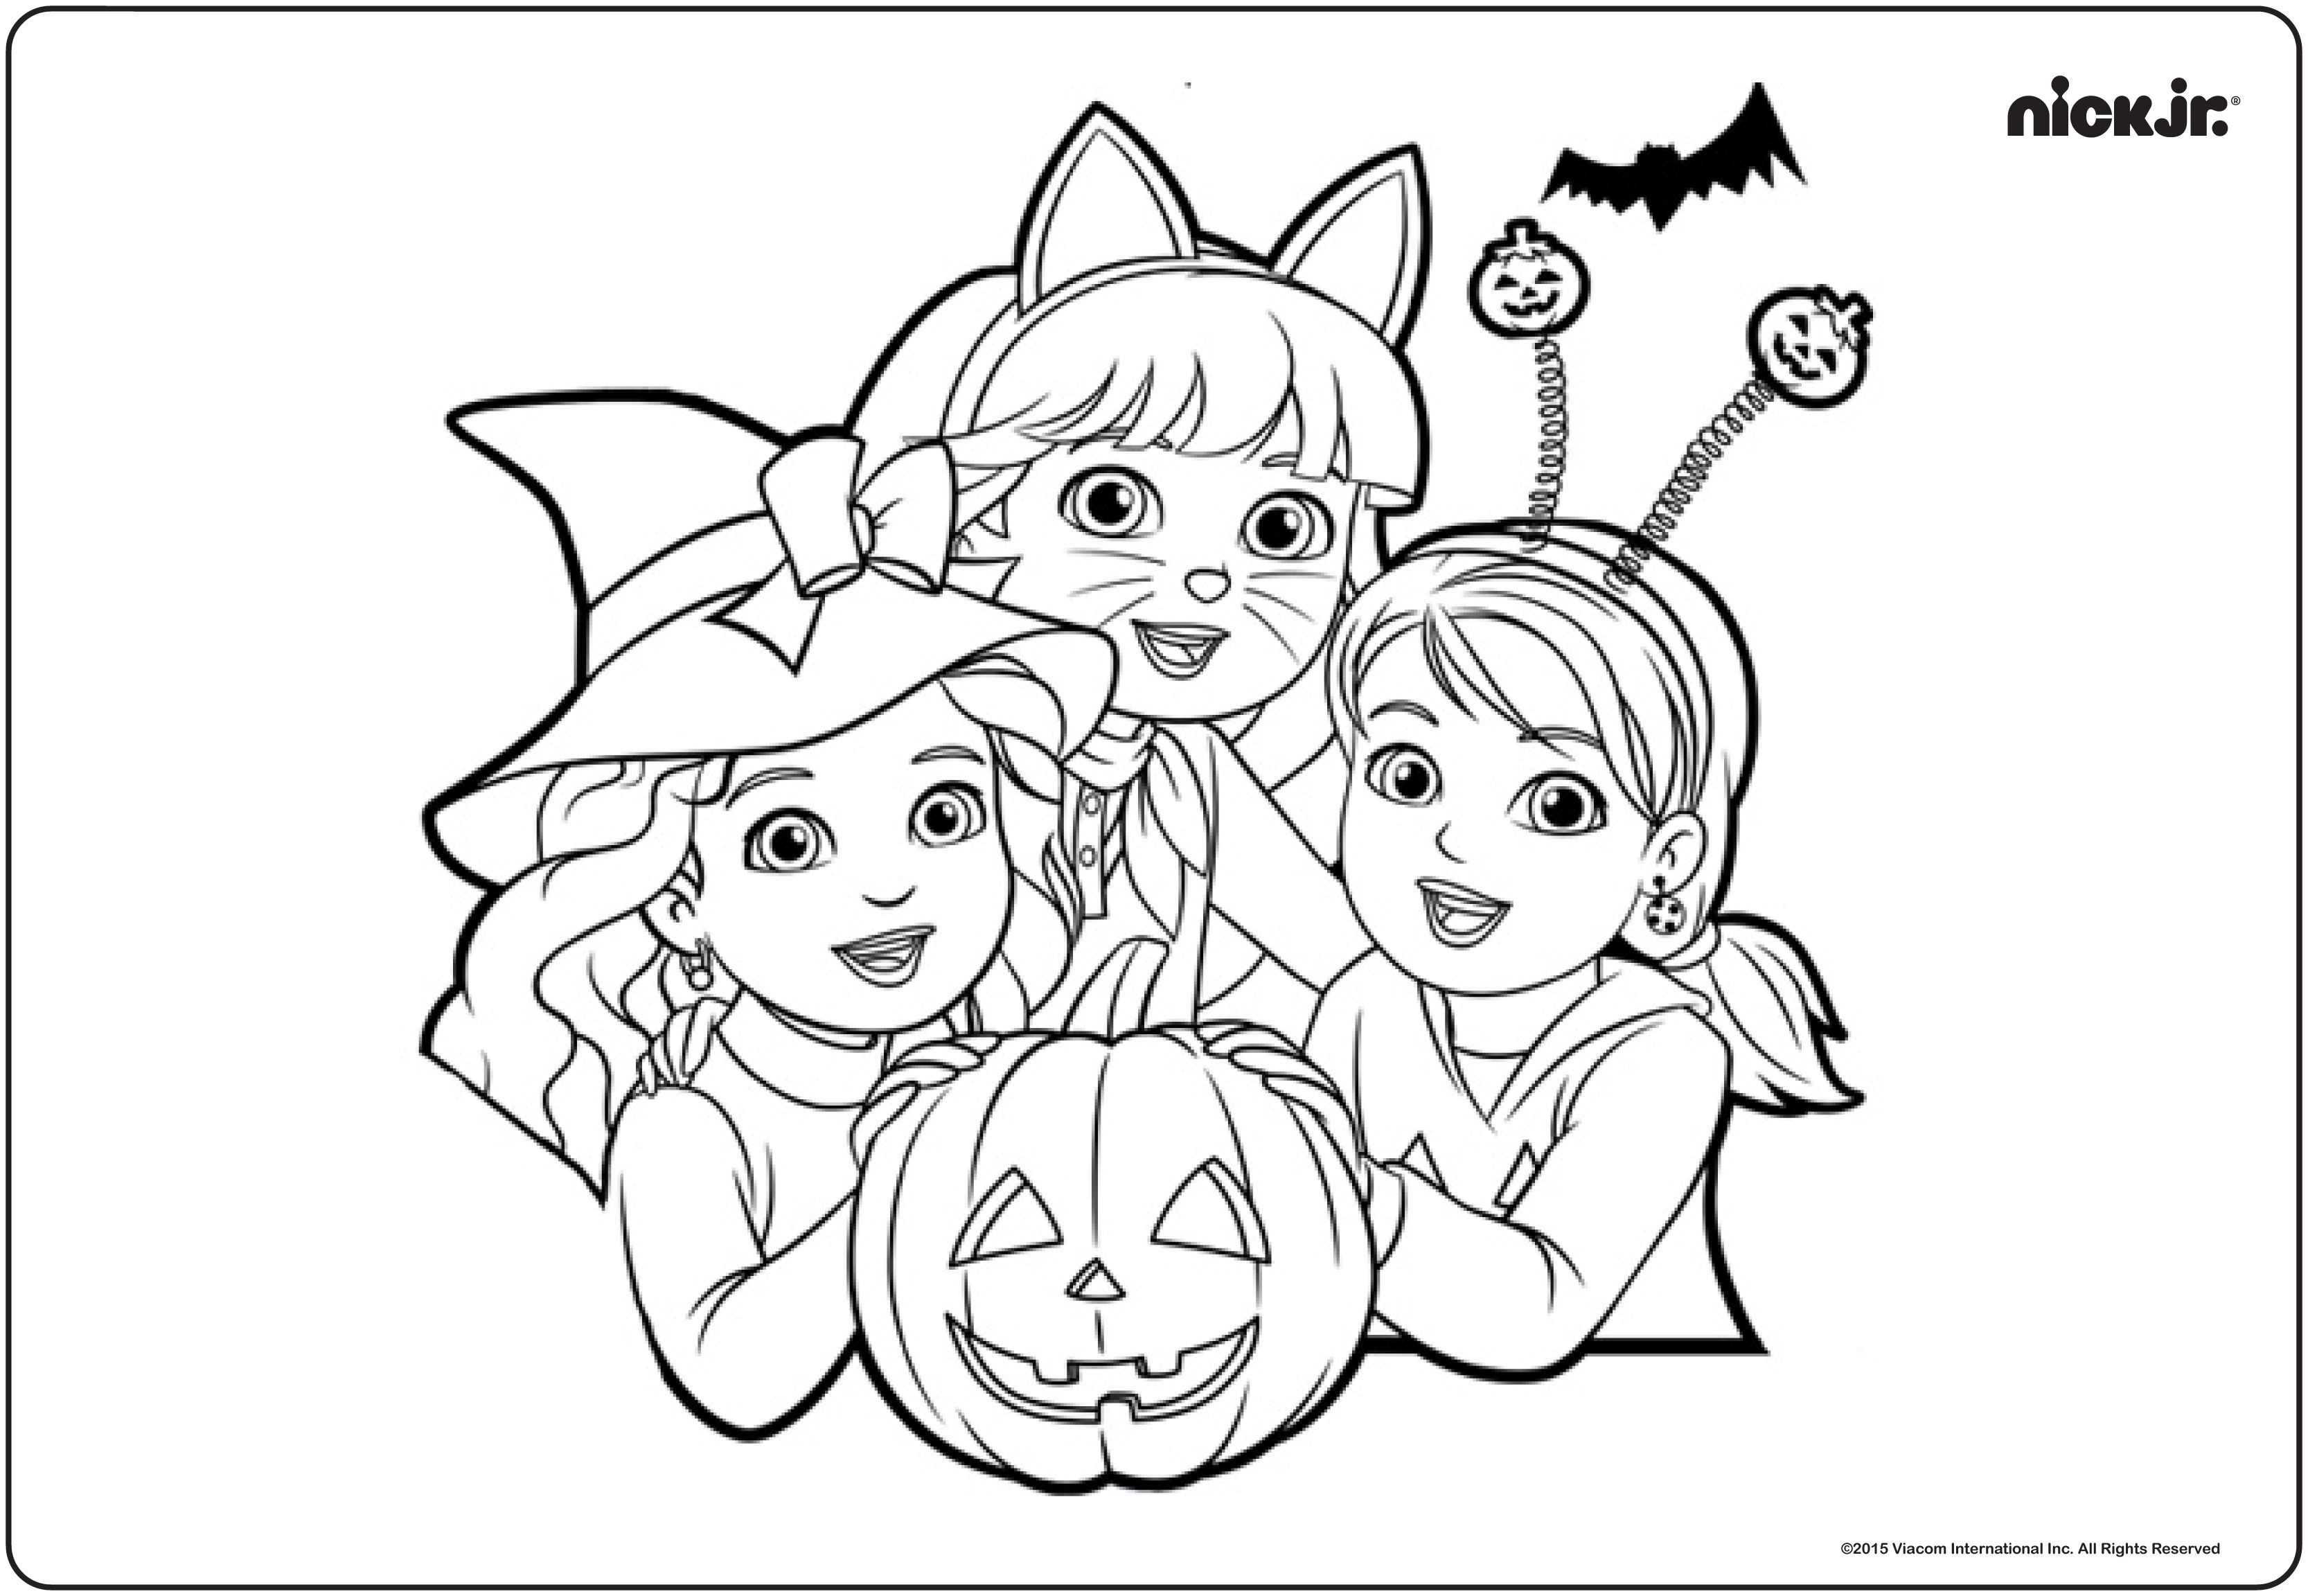 Painting pages dora - Co Coloring Games Nick Jr Nick Jr Pumpkin Party And Giveaway In The Playroom Coloring